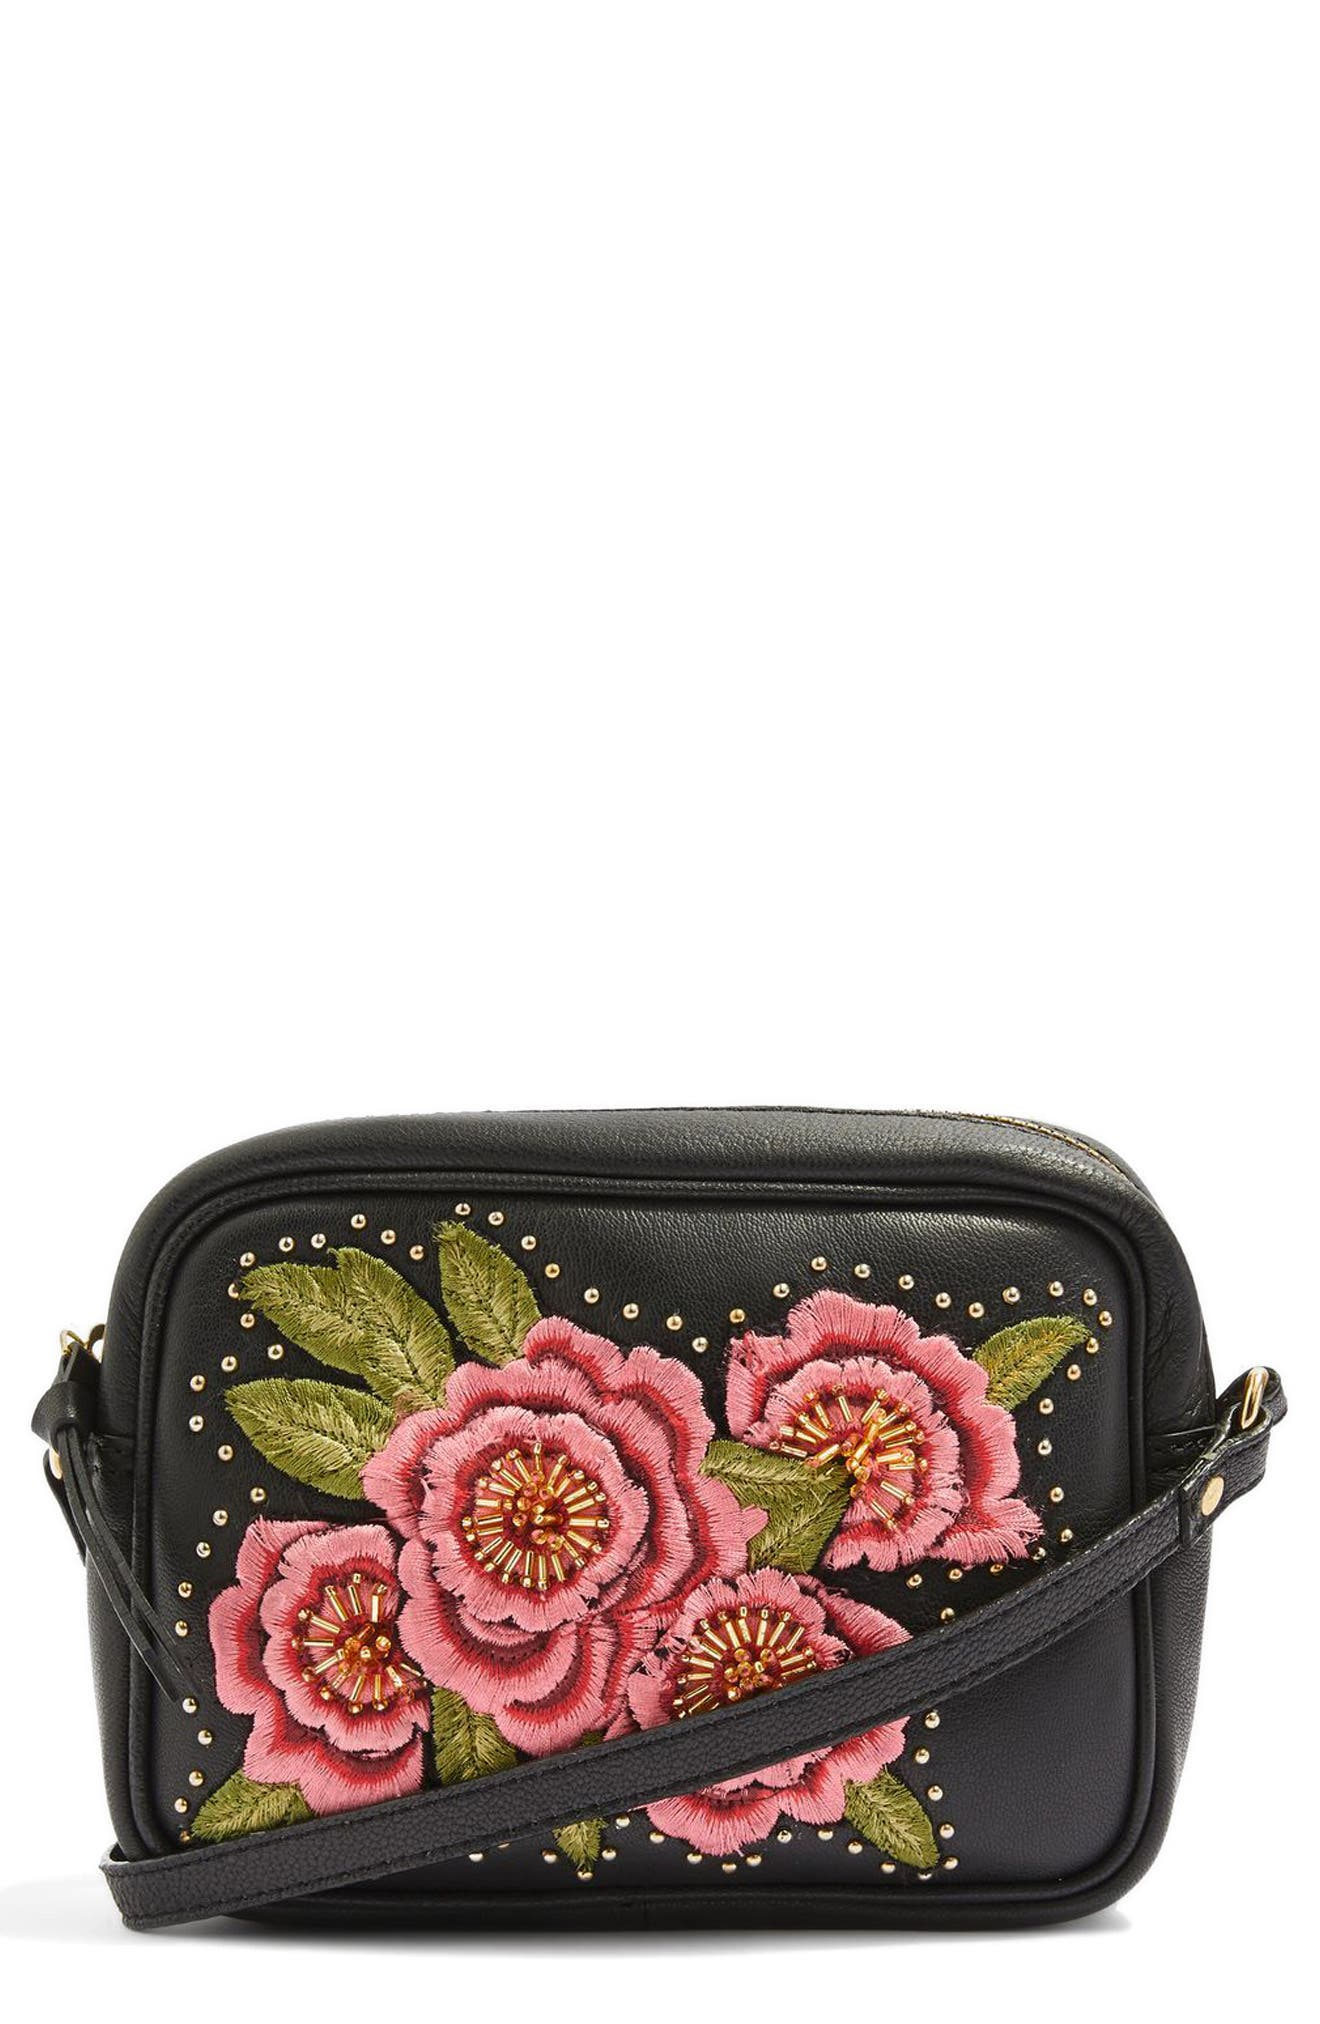 Main Image - Topshop Floral Embroidered Leather Crossbody Bag